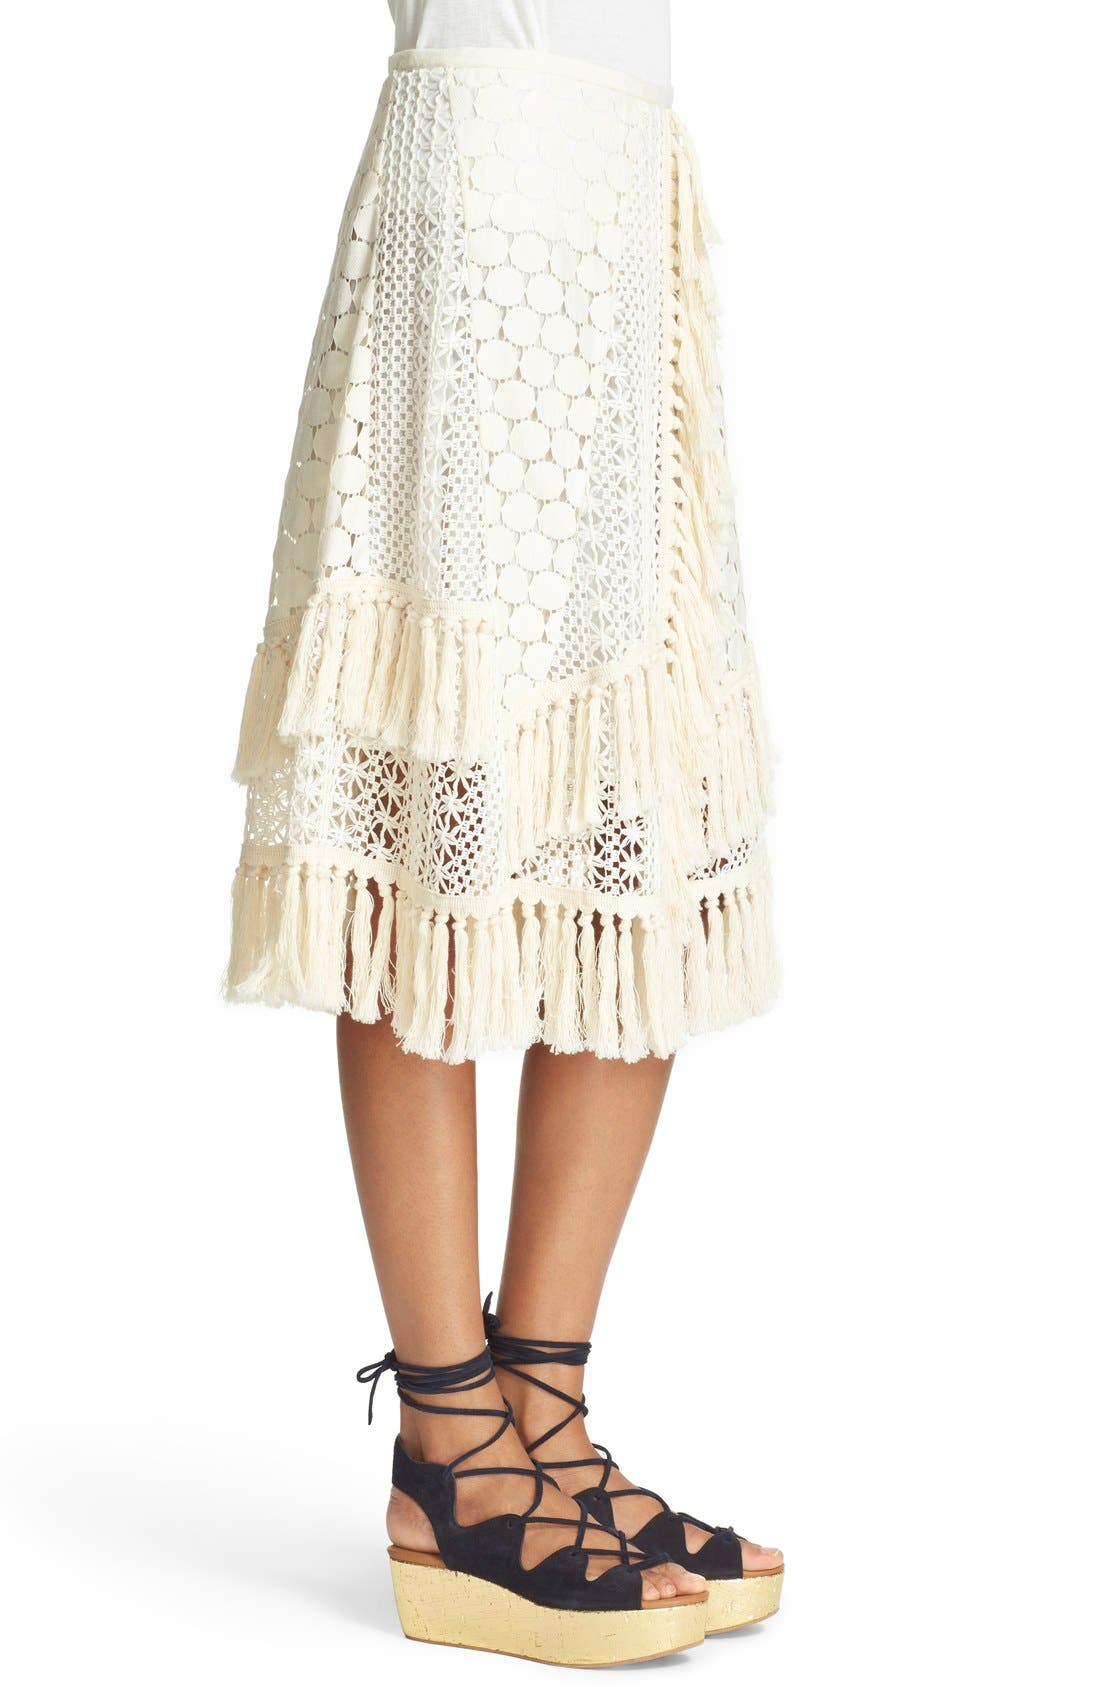 SEE BY CHLOÉ,                             Lace & Fringe Skirt,                             Alternate thumbnail 4, color,                             900